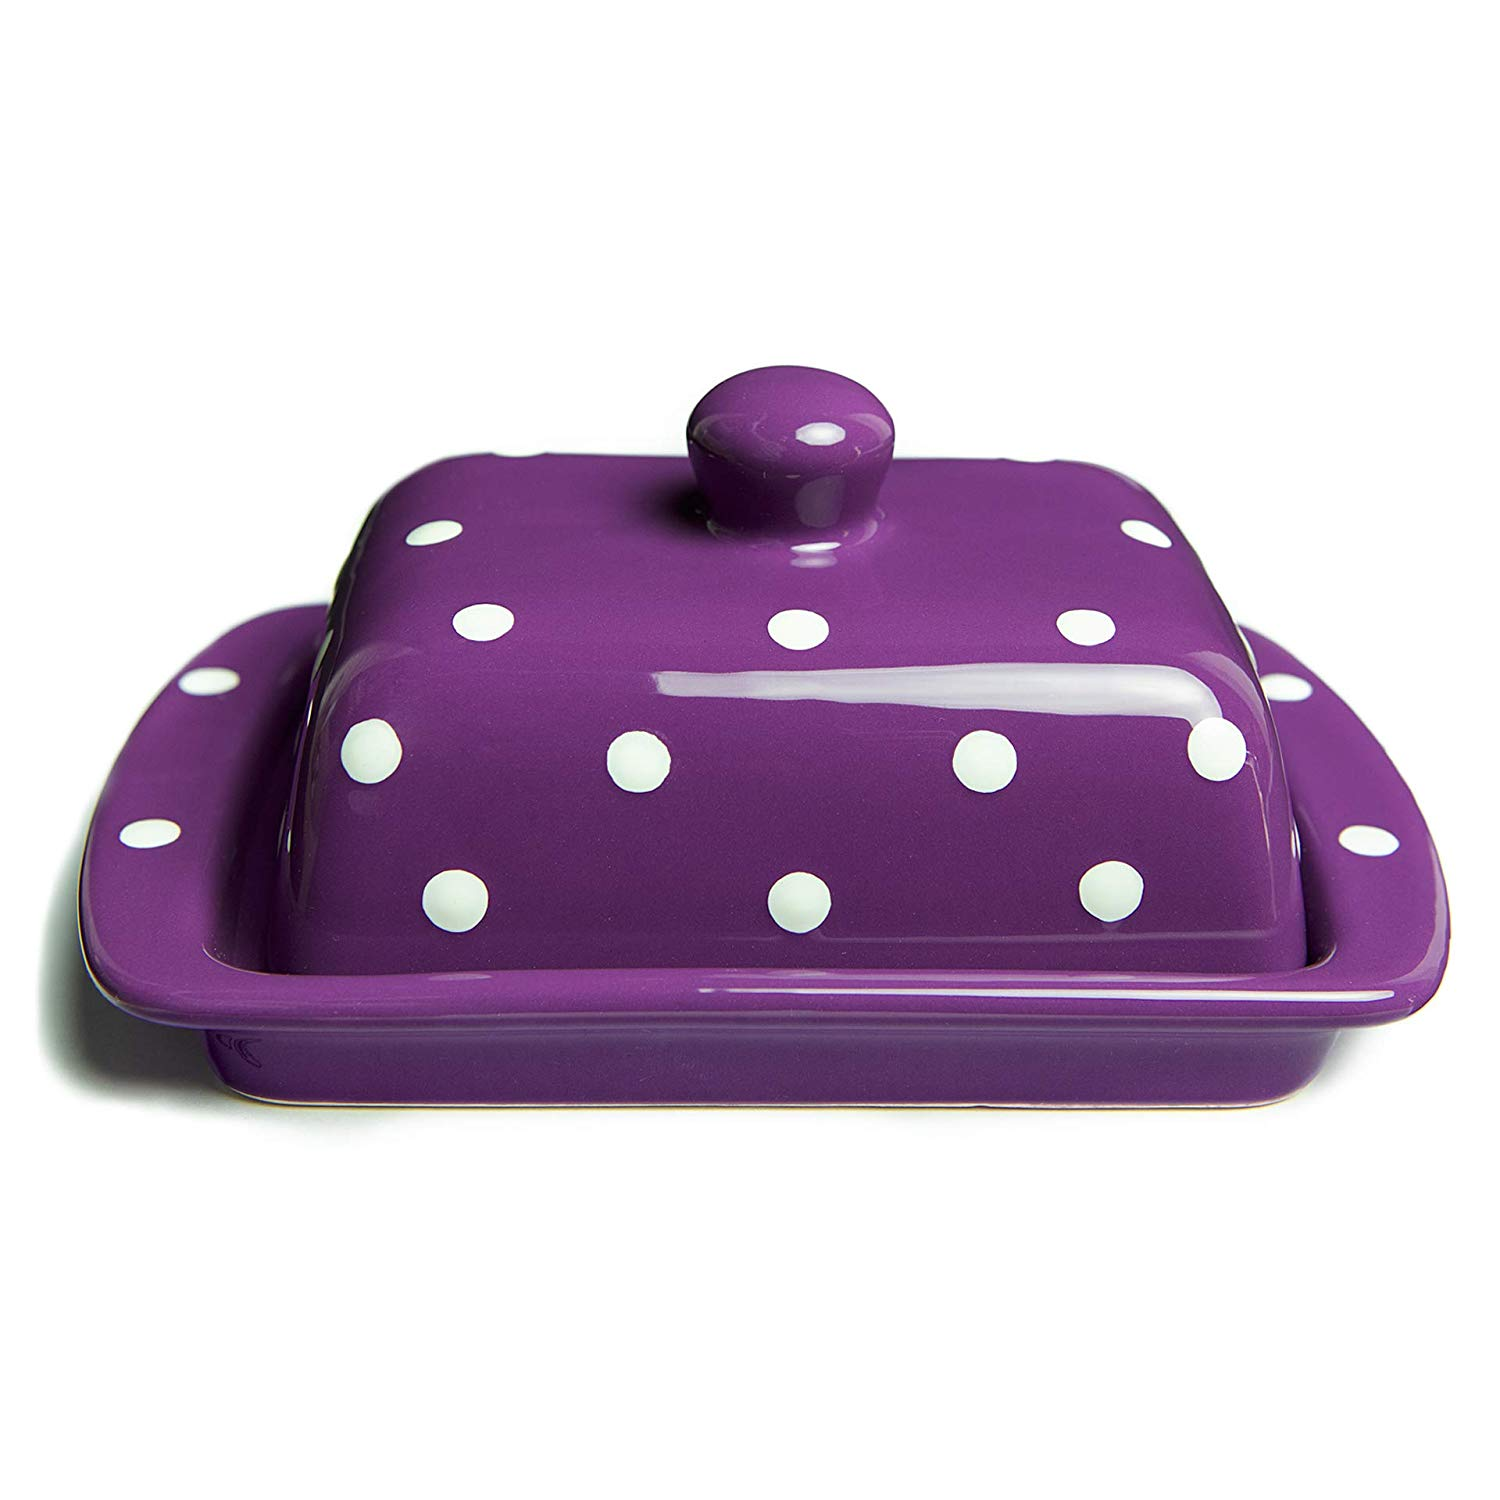 City to Cottage Handmade Ceramic European Covered Butter Dish with Lid | Unique Purple and White Polka Dot Pottery Butter Keeper | Housewarming Gift